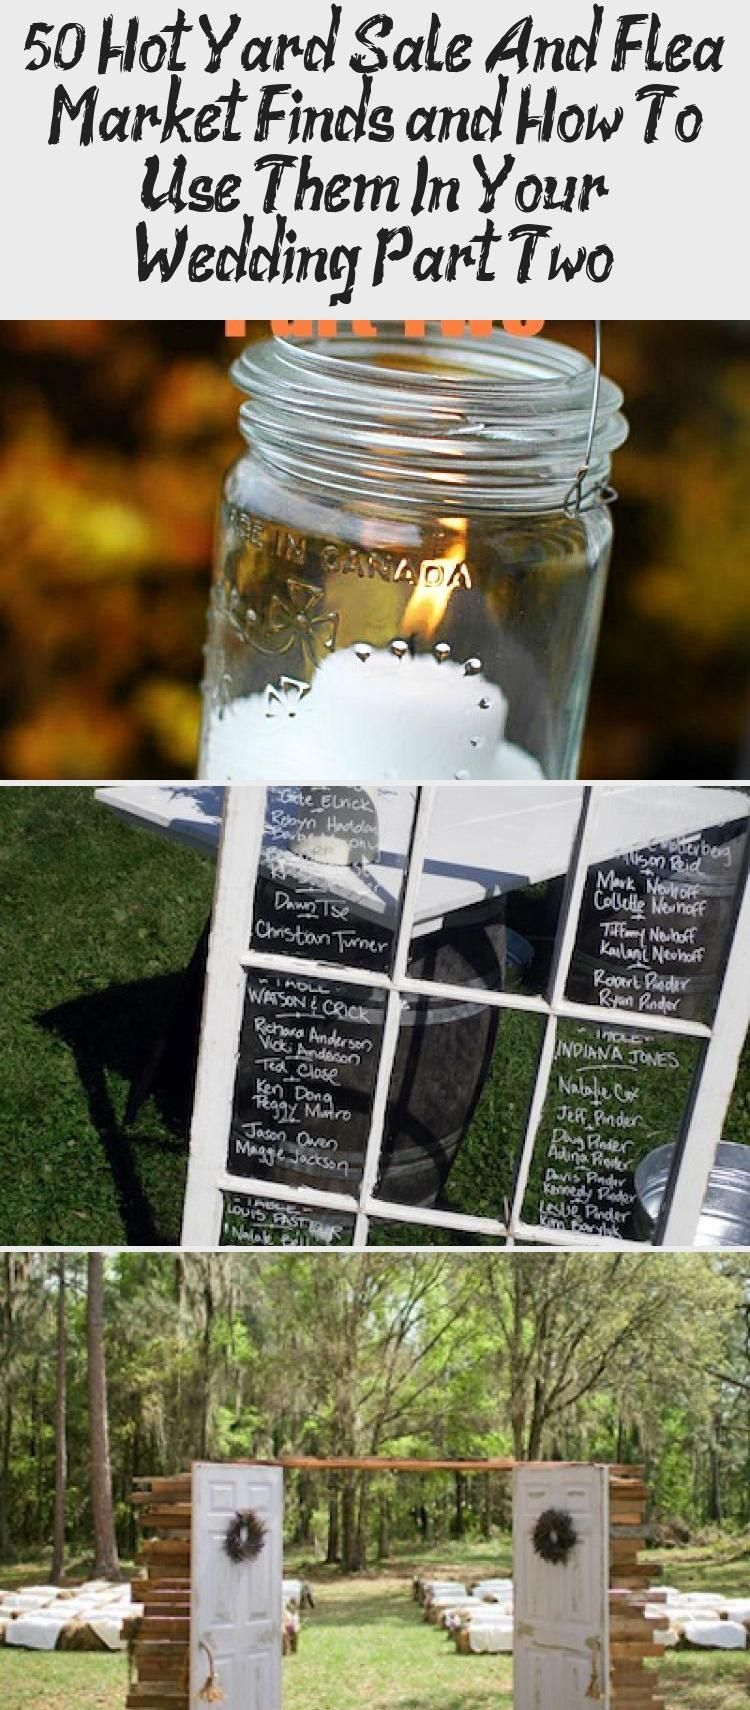 50 Hot Yard Sale and Flea Market Finds And How to Use them in Your Wedding Pa 50 Hot Yard Sale and Flea Market Finds And How to Use them in Your Wedding Part Two  Intimat...